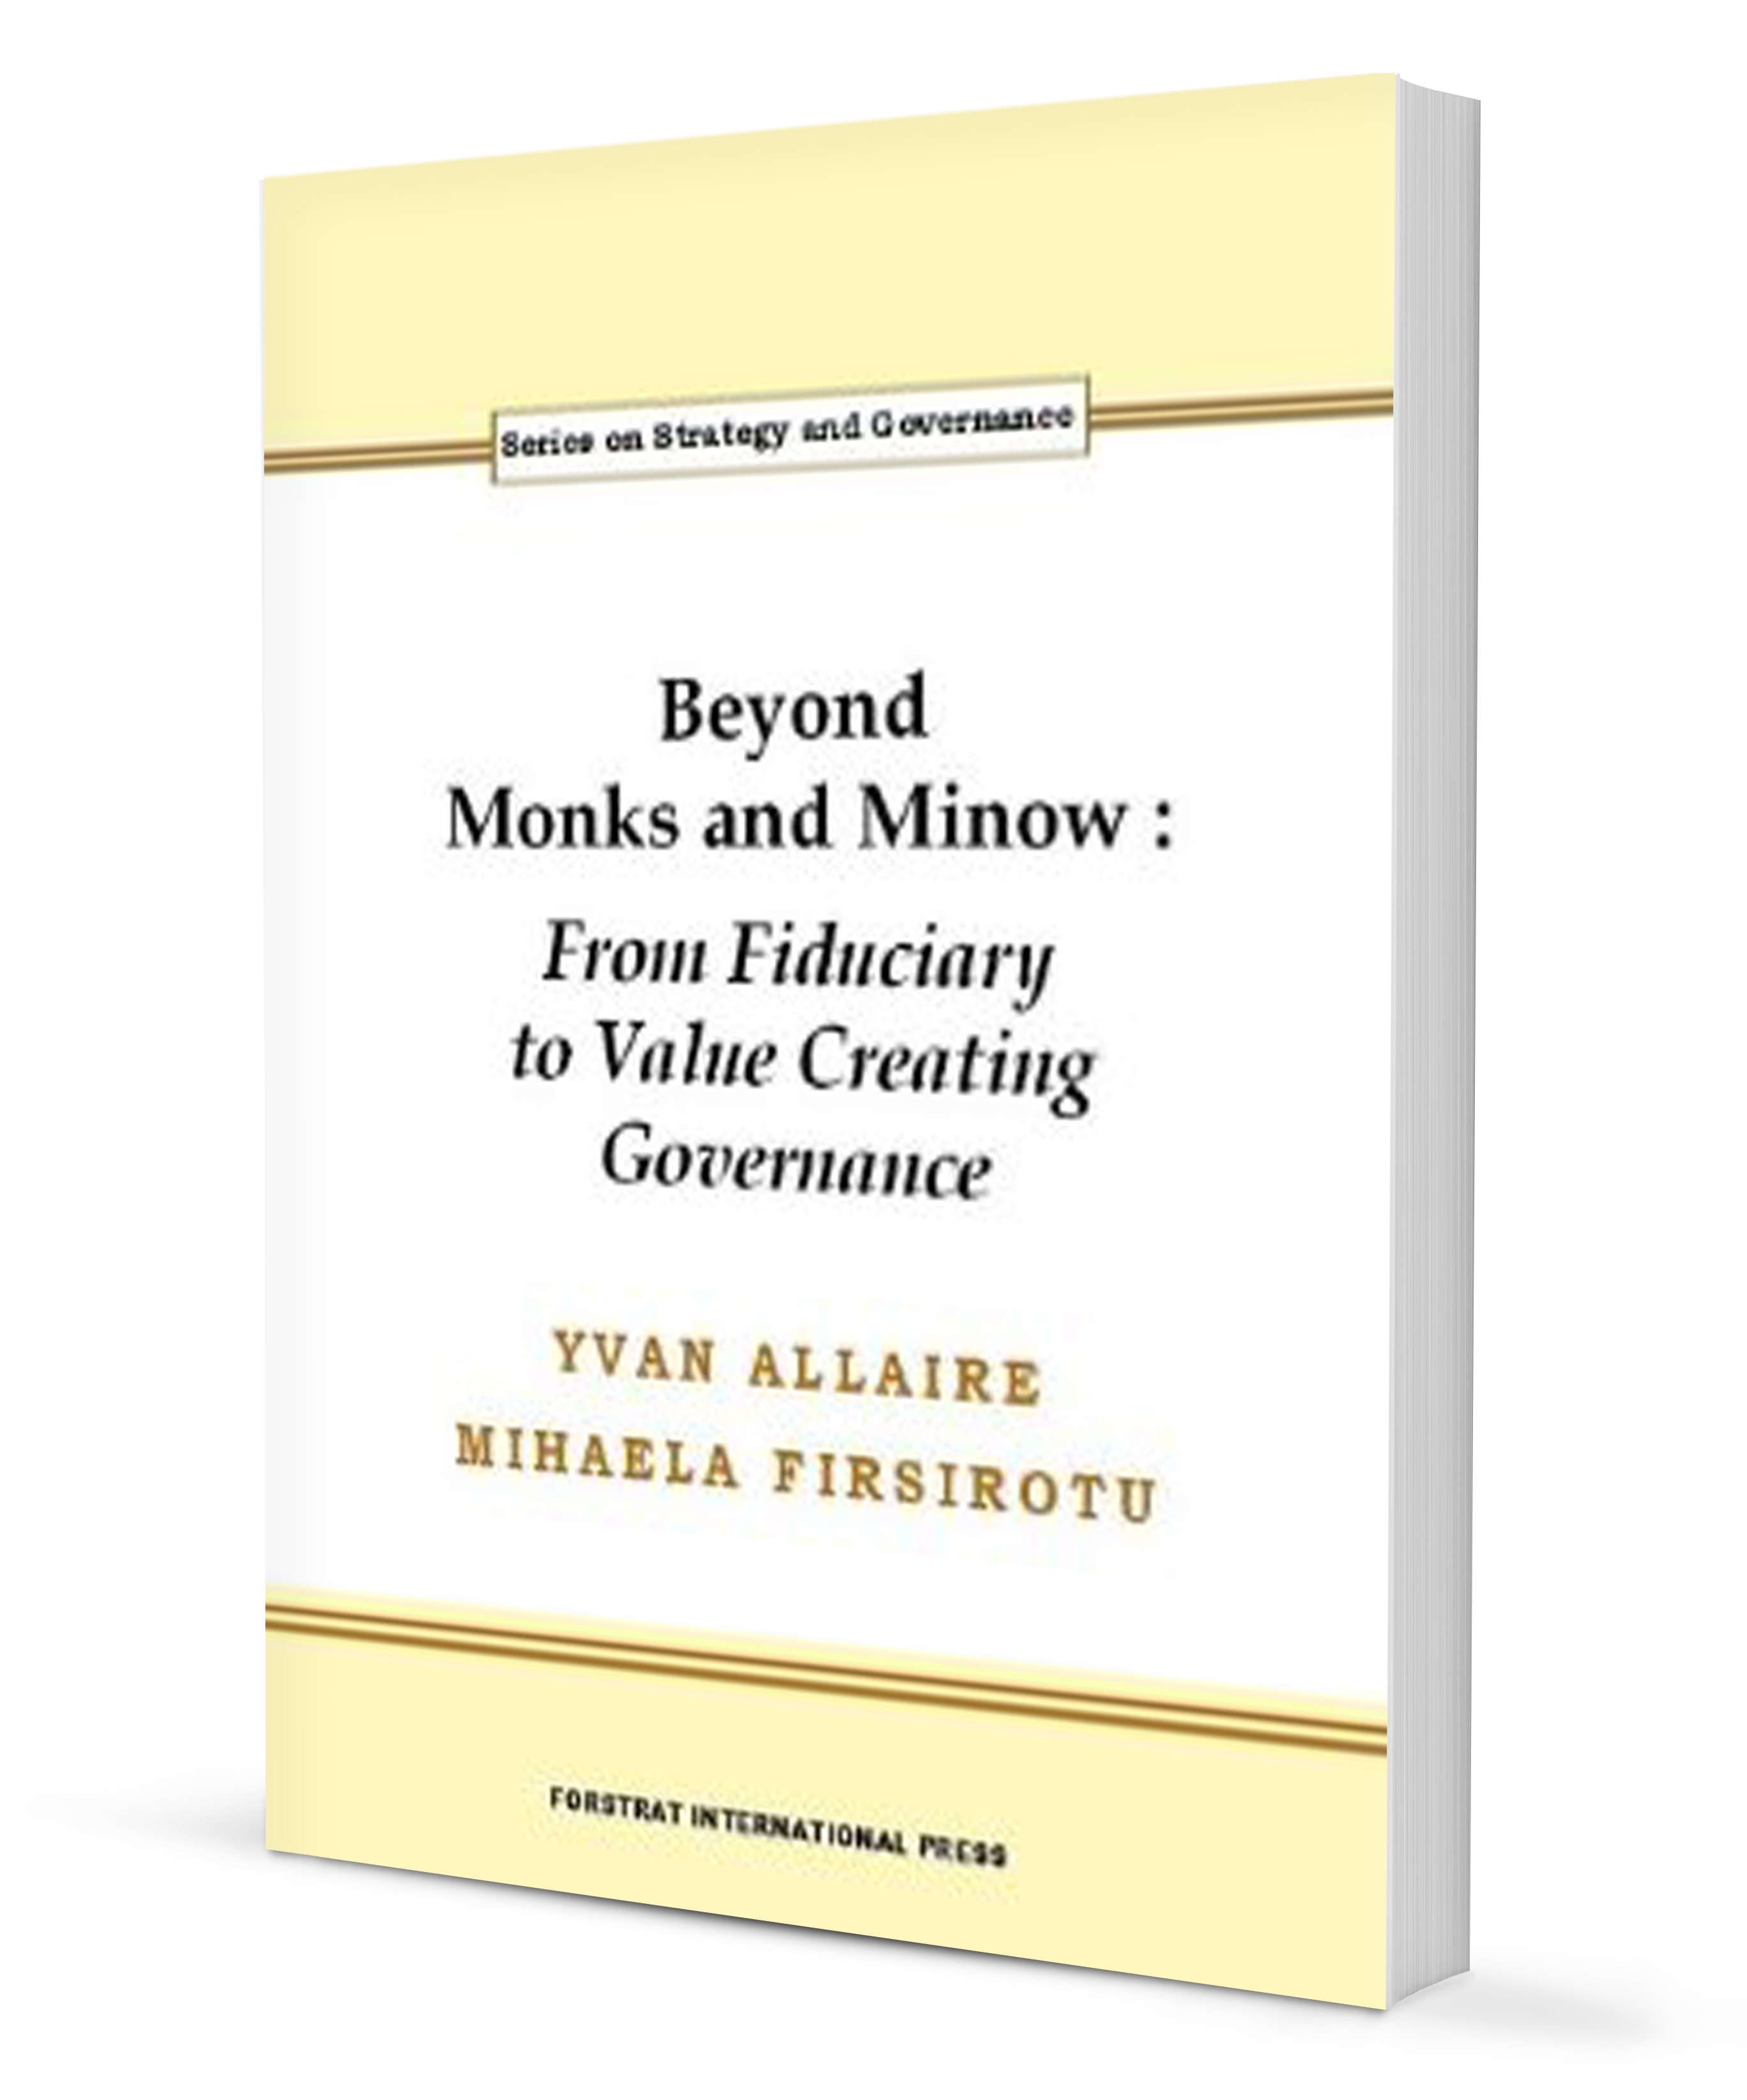 Beyond Monks and Minow